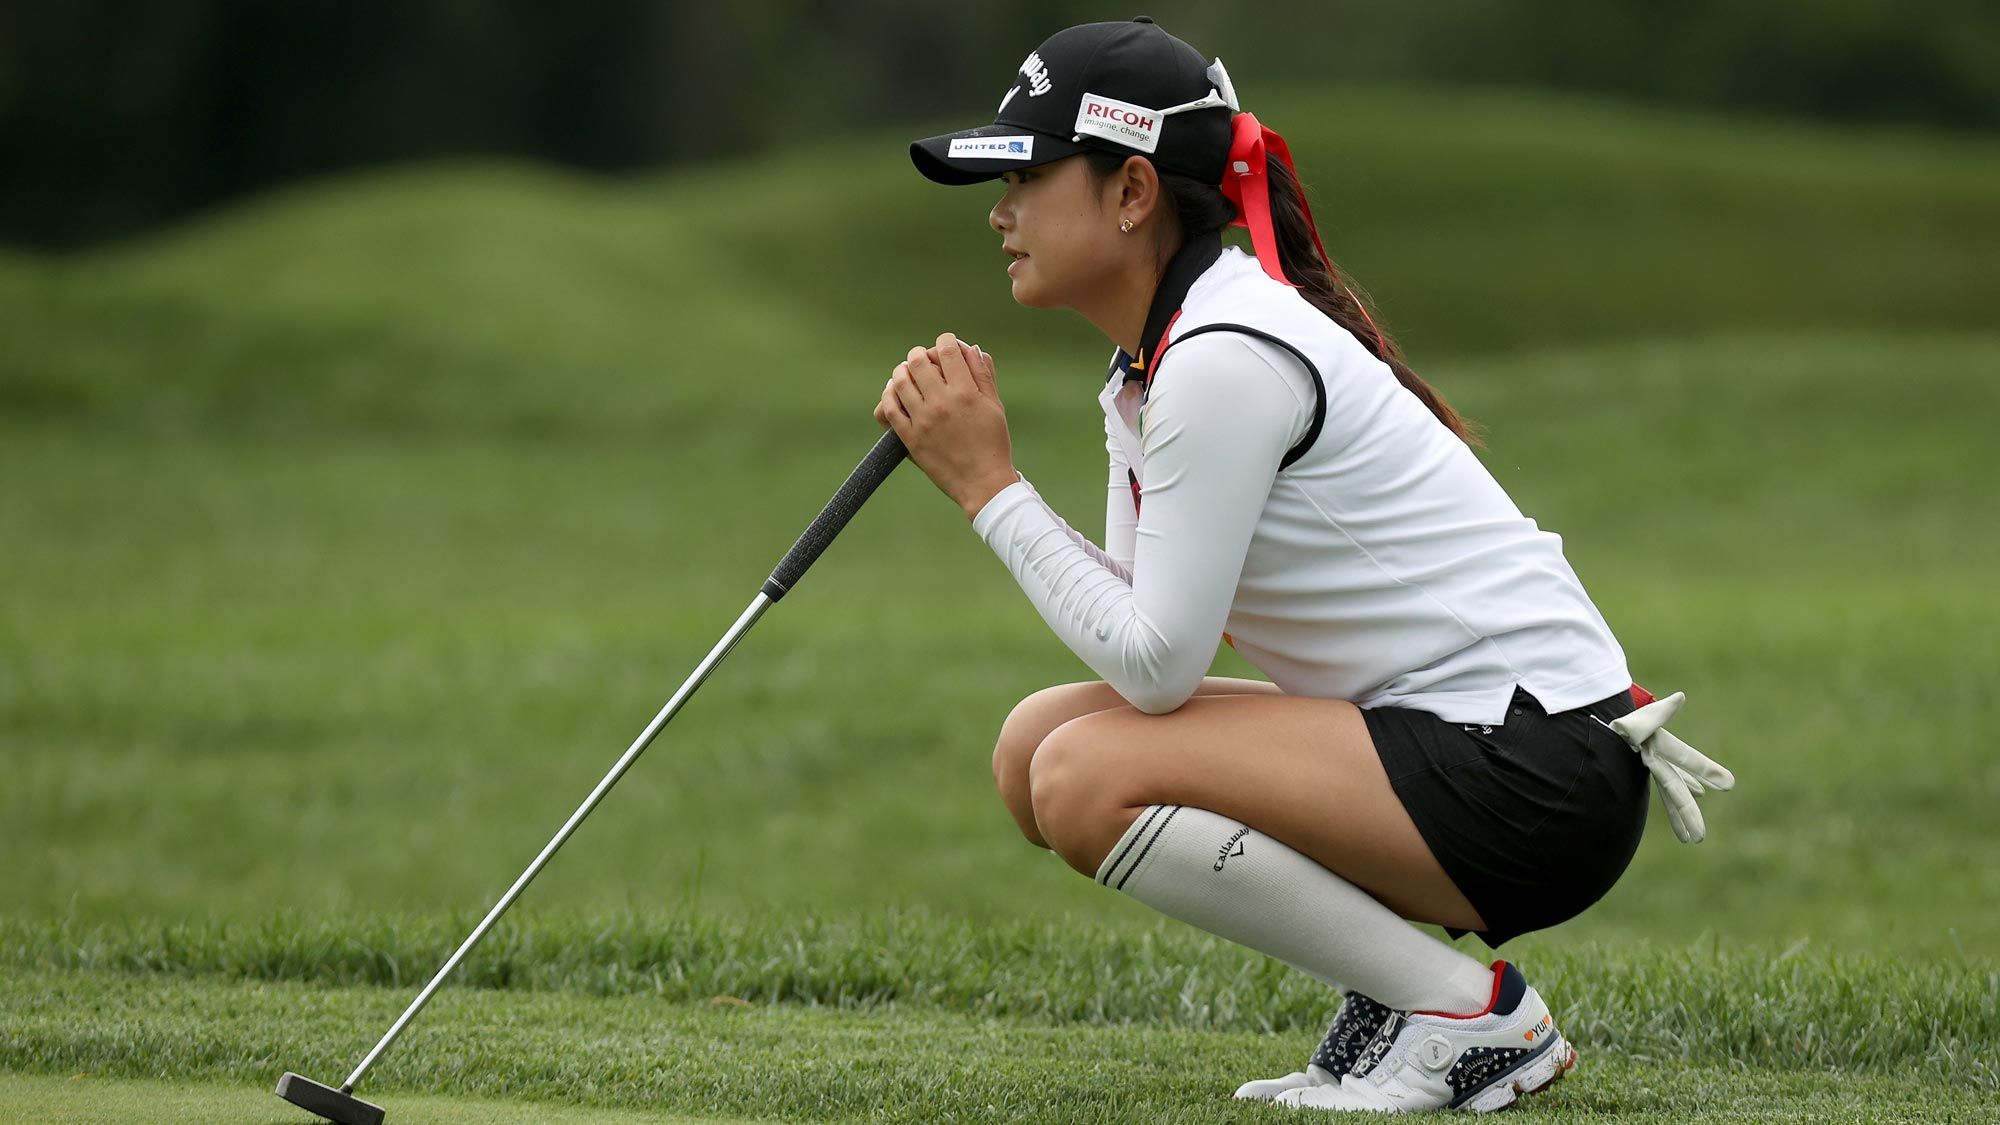 Yui Kawamoto of Japan lines up a putt on the 13th green during the final round of the LPGA Drive On Championship